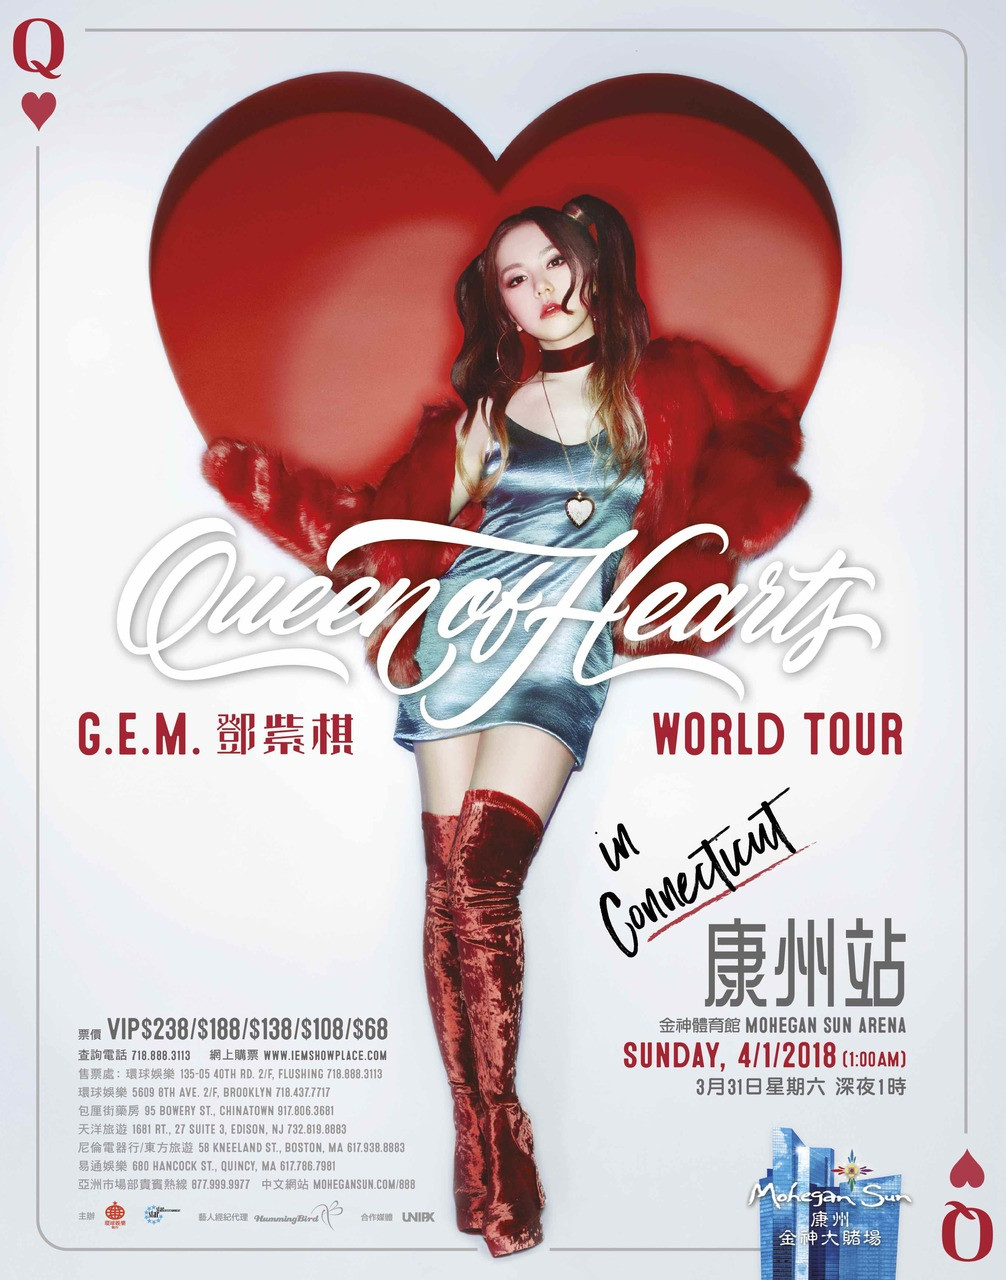 G.E.M. QUEEN OF HEARTS WORLD TOUR Connecticut